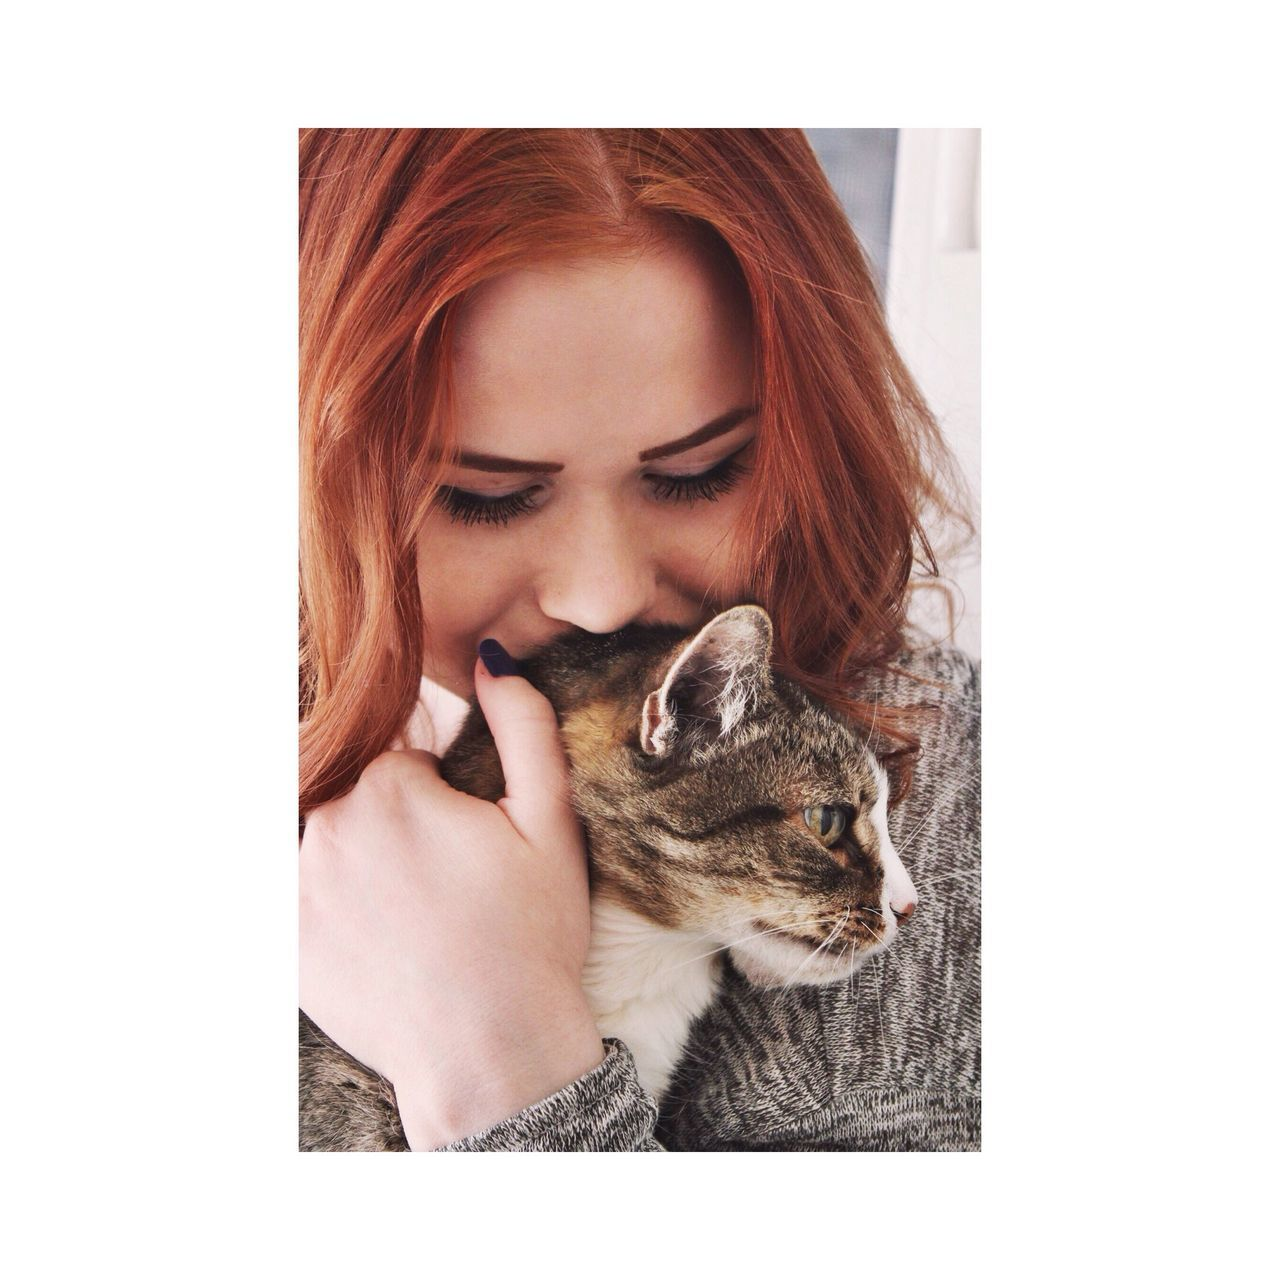 pets, one animal, eyes closed, mammal, animal themes, one person, domestic cat, domestic animals, young adult, indoors, sitting, young women, one young woman only, close-up, day, people